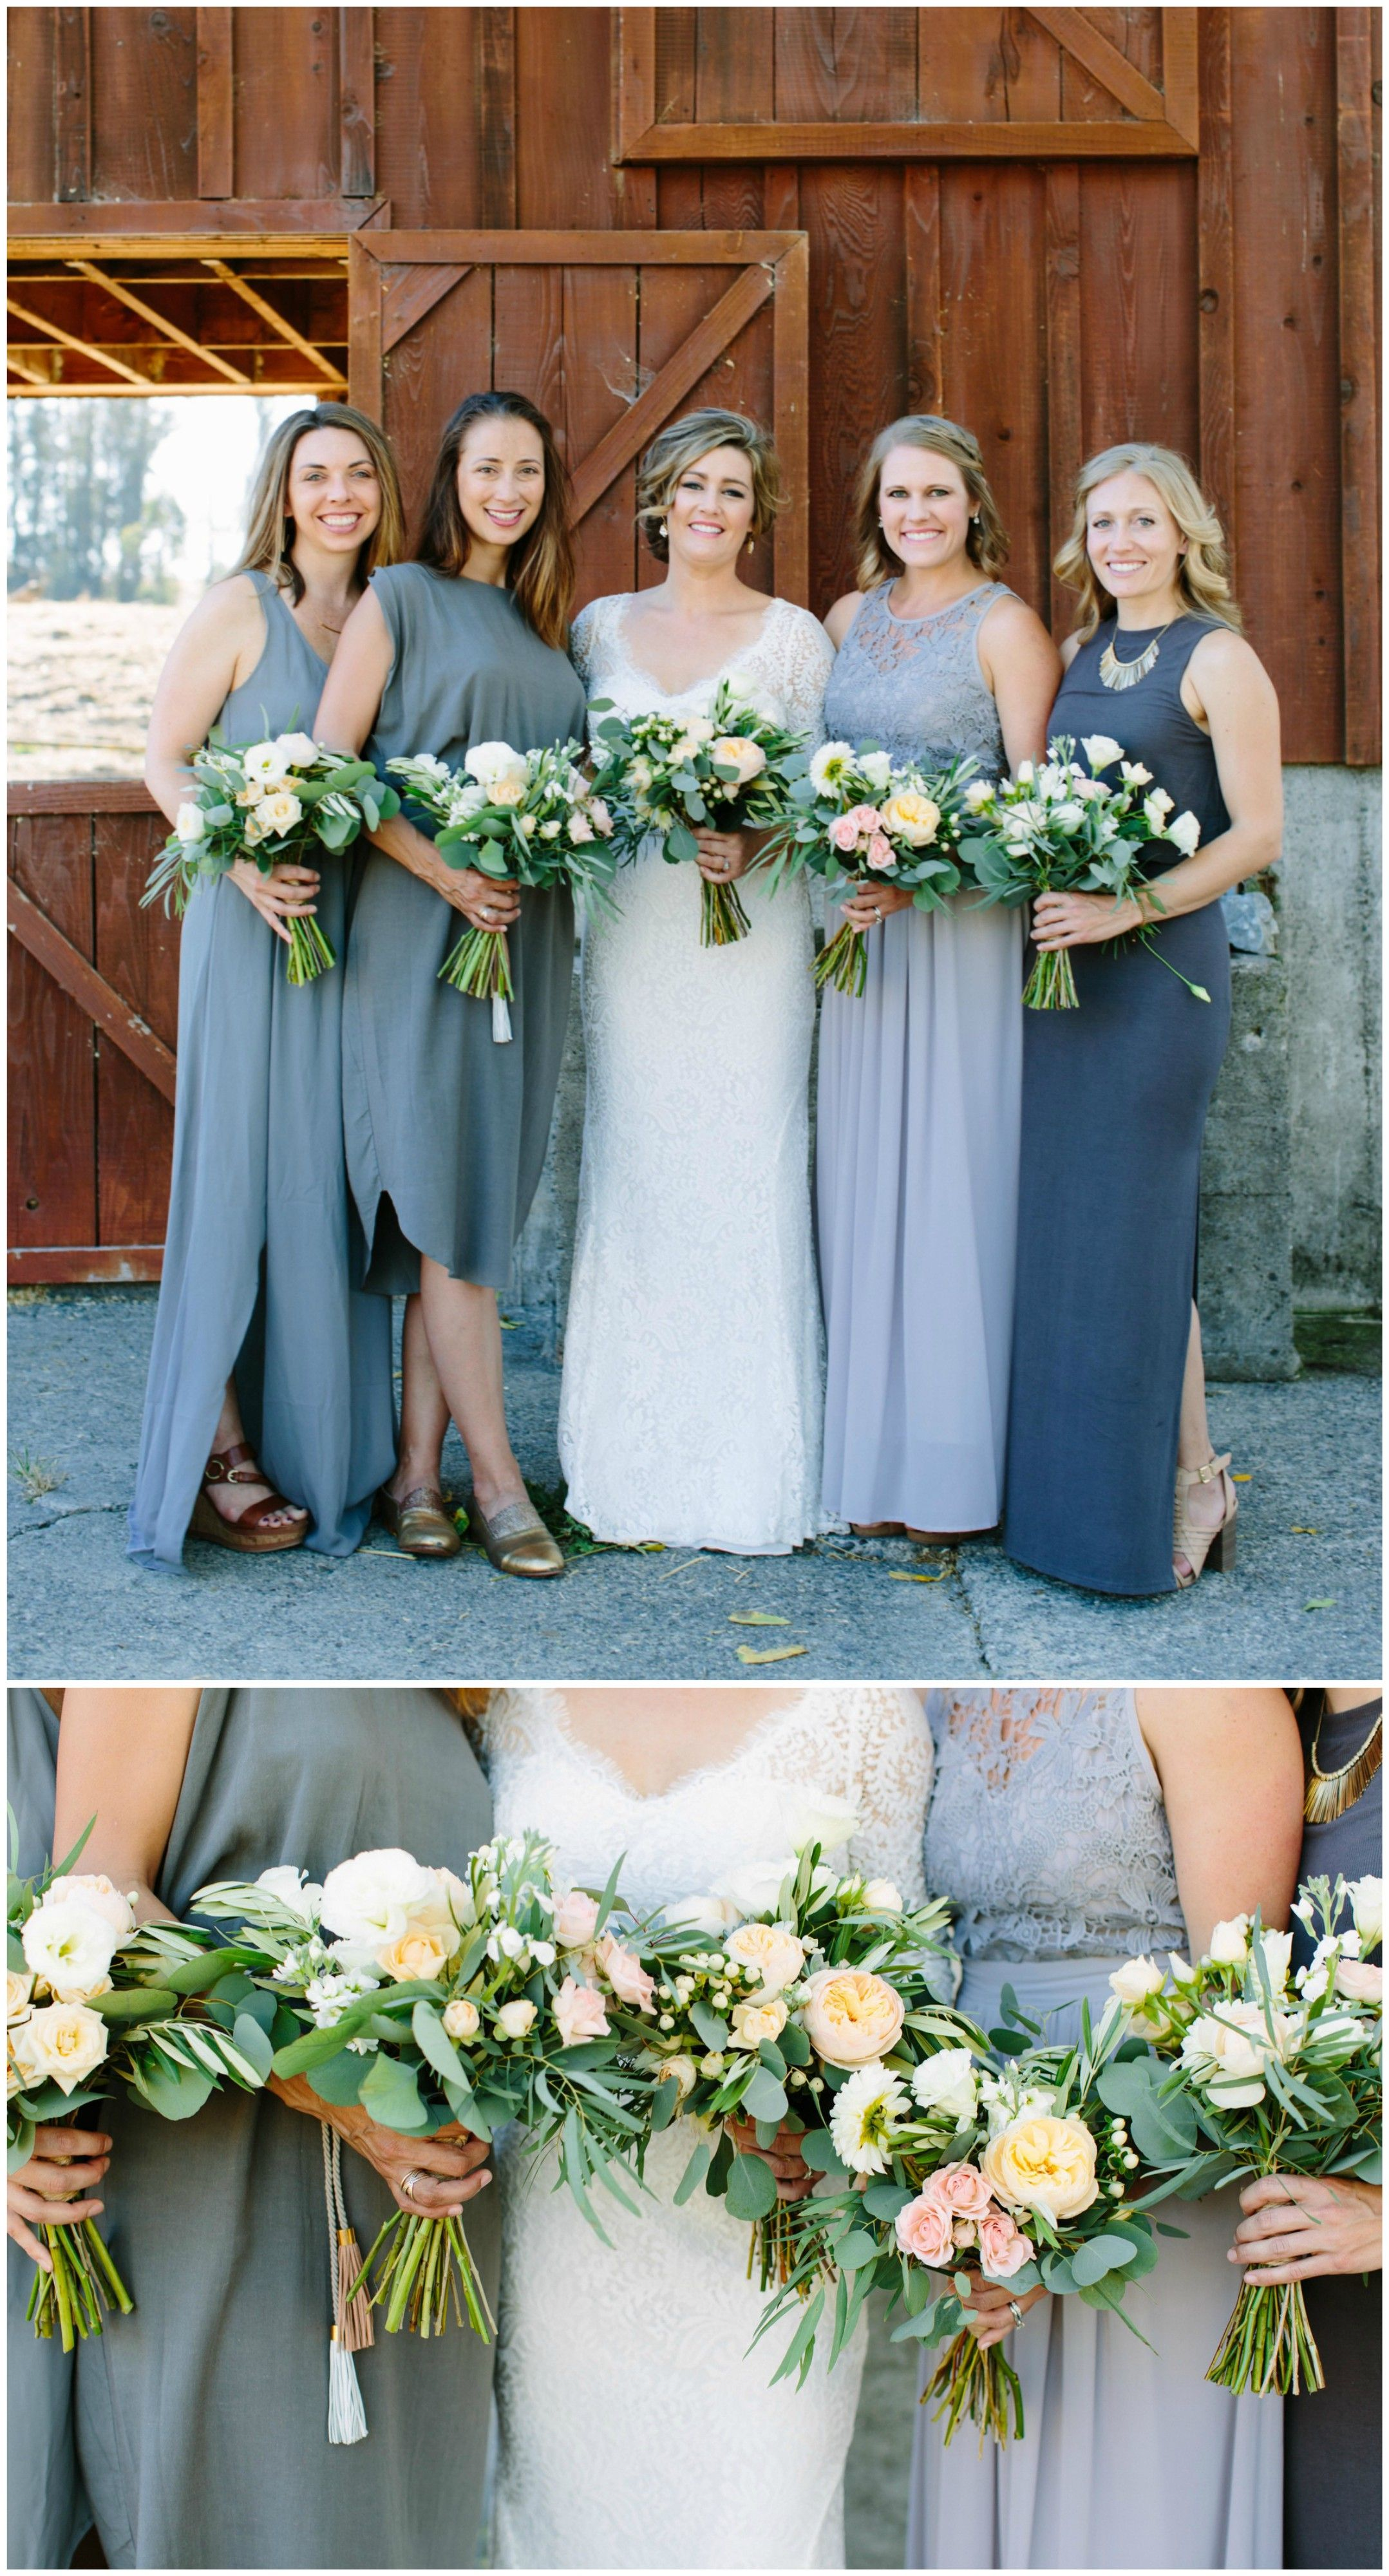 The Smarter Way to Wed | Charcoal grey bridesmaid dresses, Grey ...